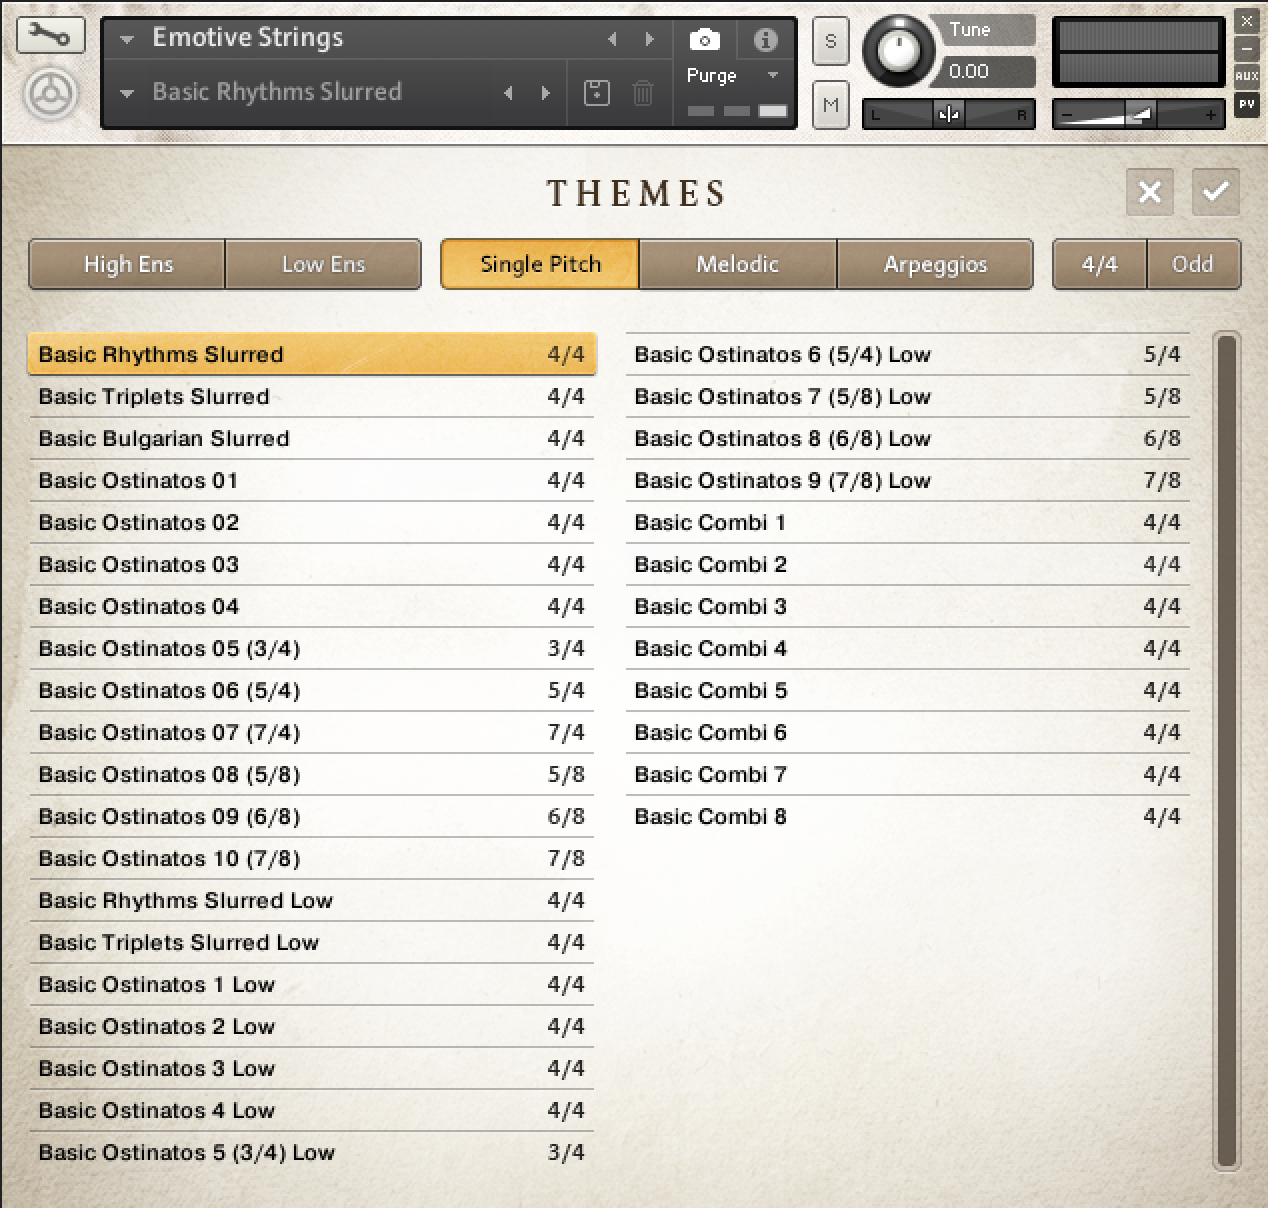 Emotive Strings_Themes